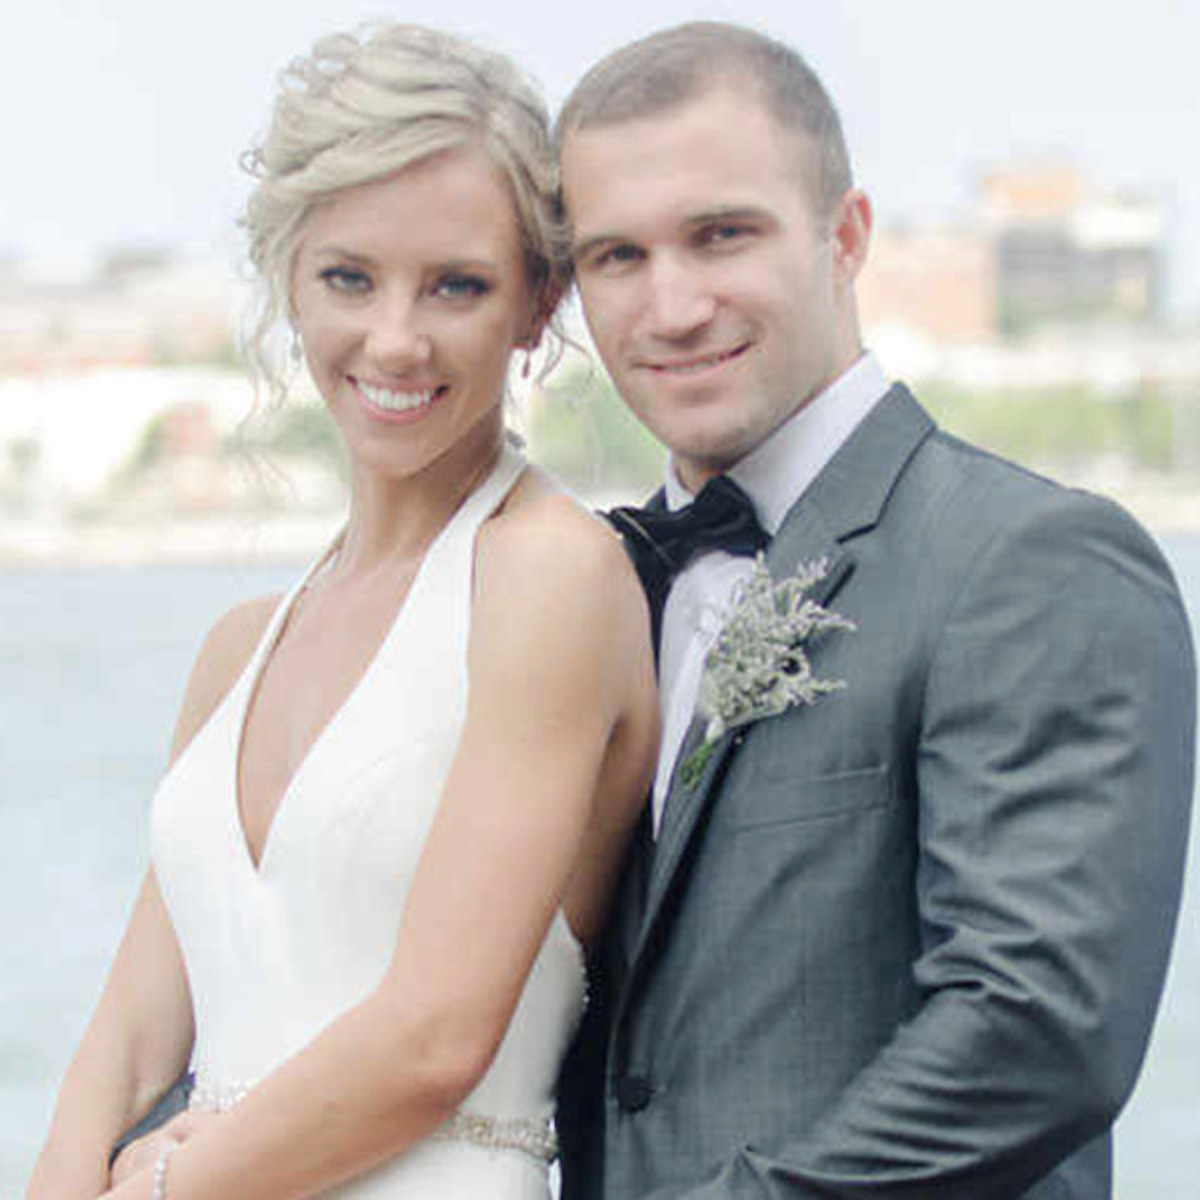 First watch season 6 married sight at Welcome to